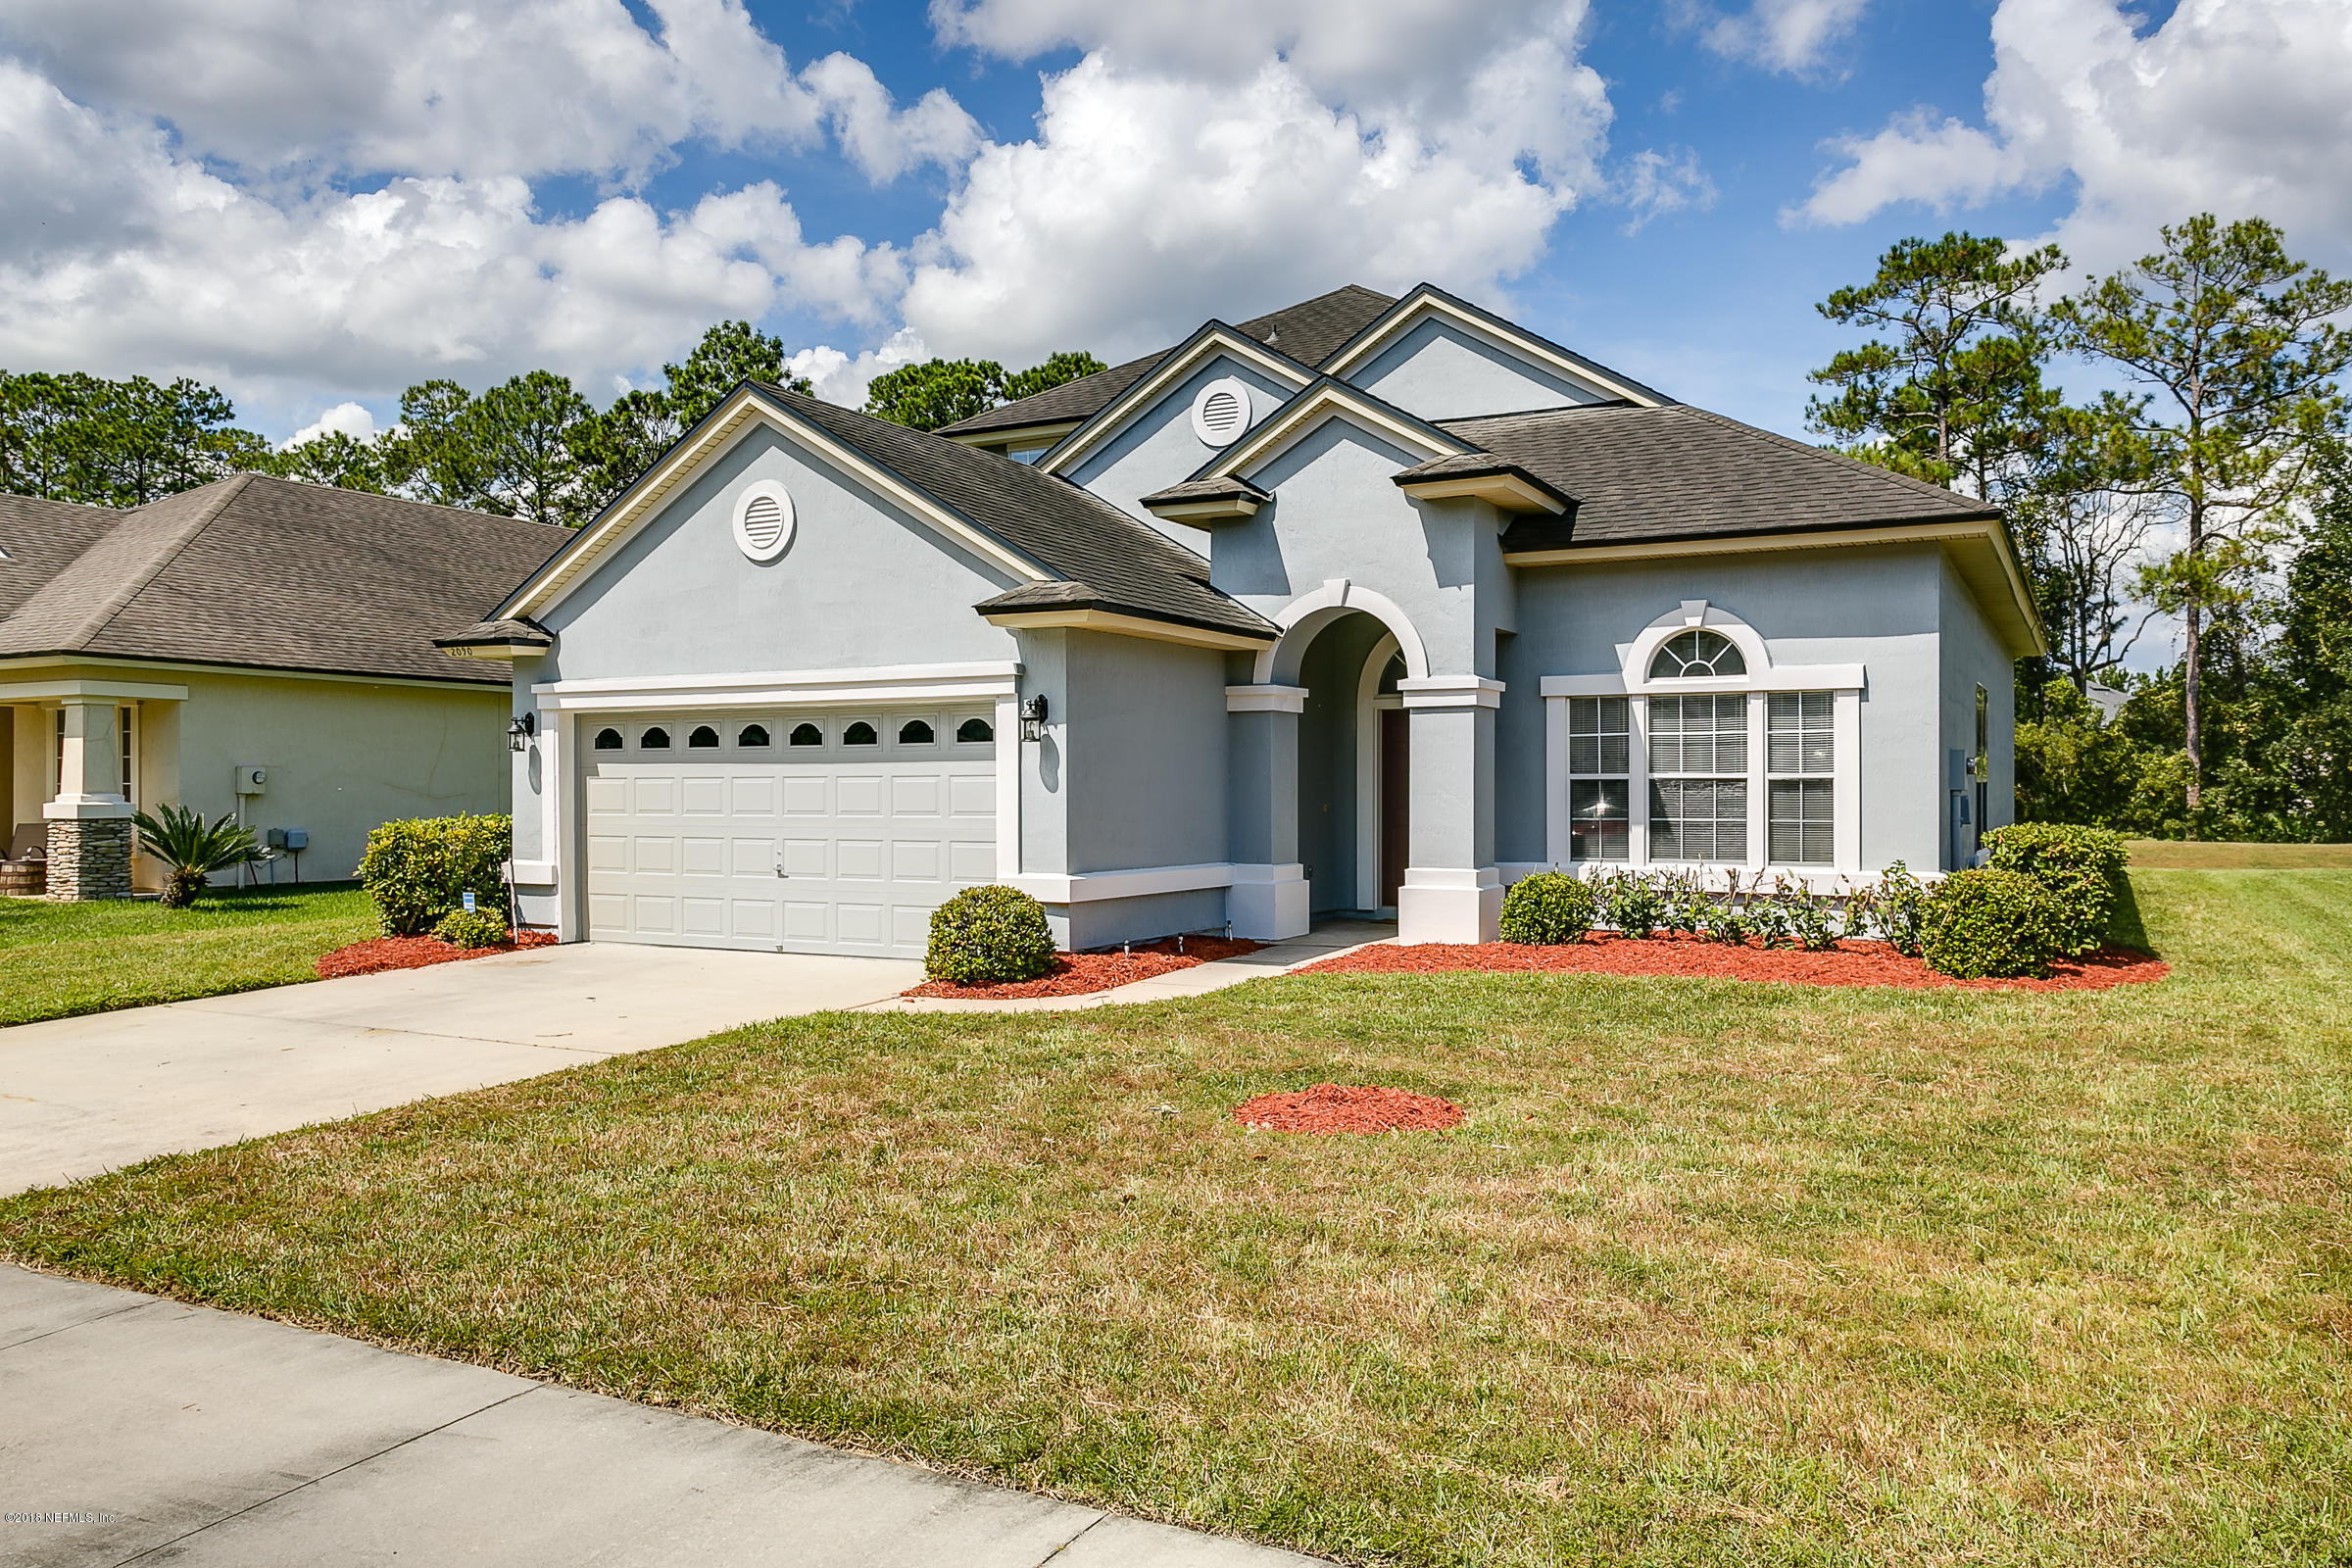 2090 HERITAGE OAKS, ORANGE PARK, FLORIDA 32003, 3 Bedrooms Bedrooms, ,2 BathroomsBathrooms,Residential - single family,For sale,HERITAGE OAKS,960028